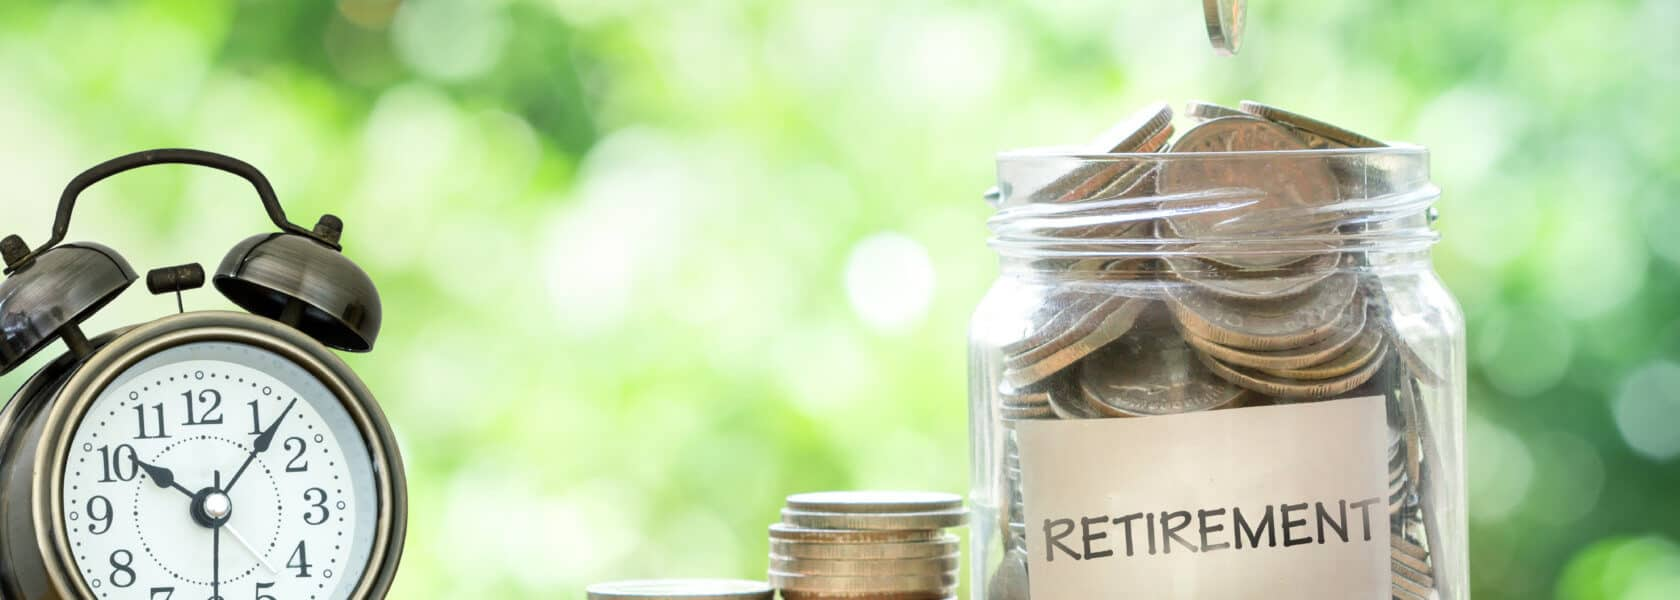 Why You Should Start Saving for Retirement in Your 20s.jpg